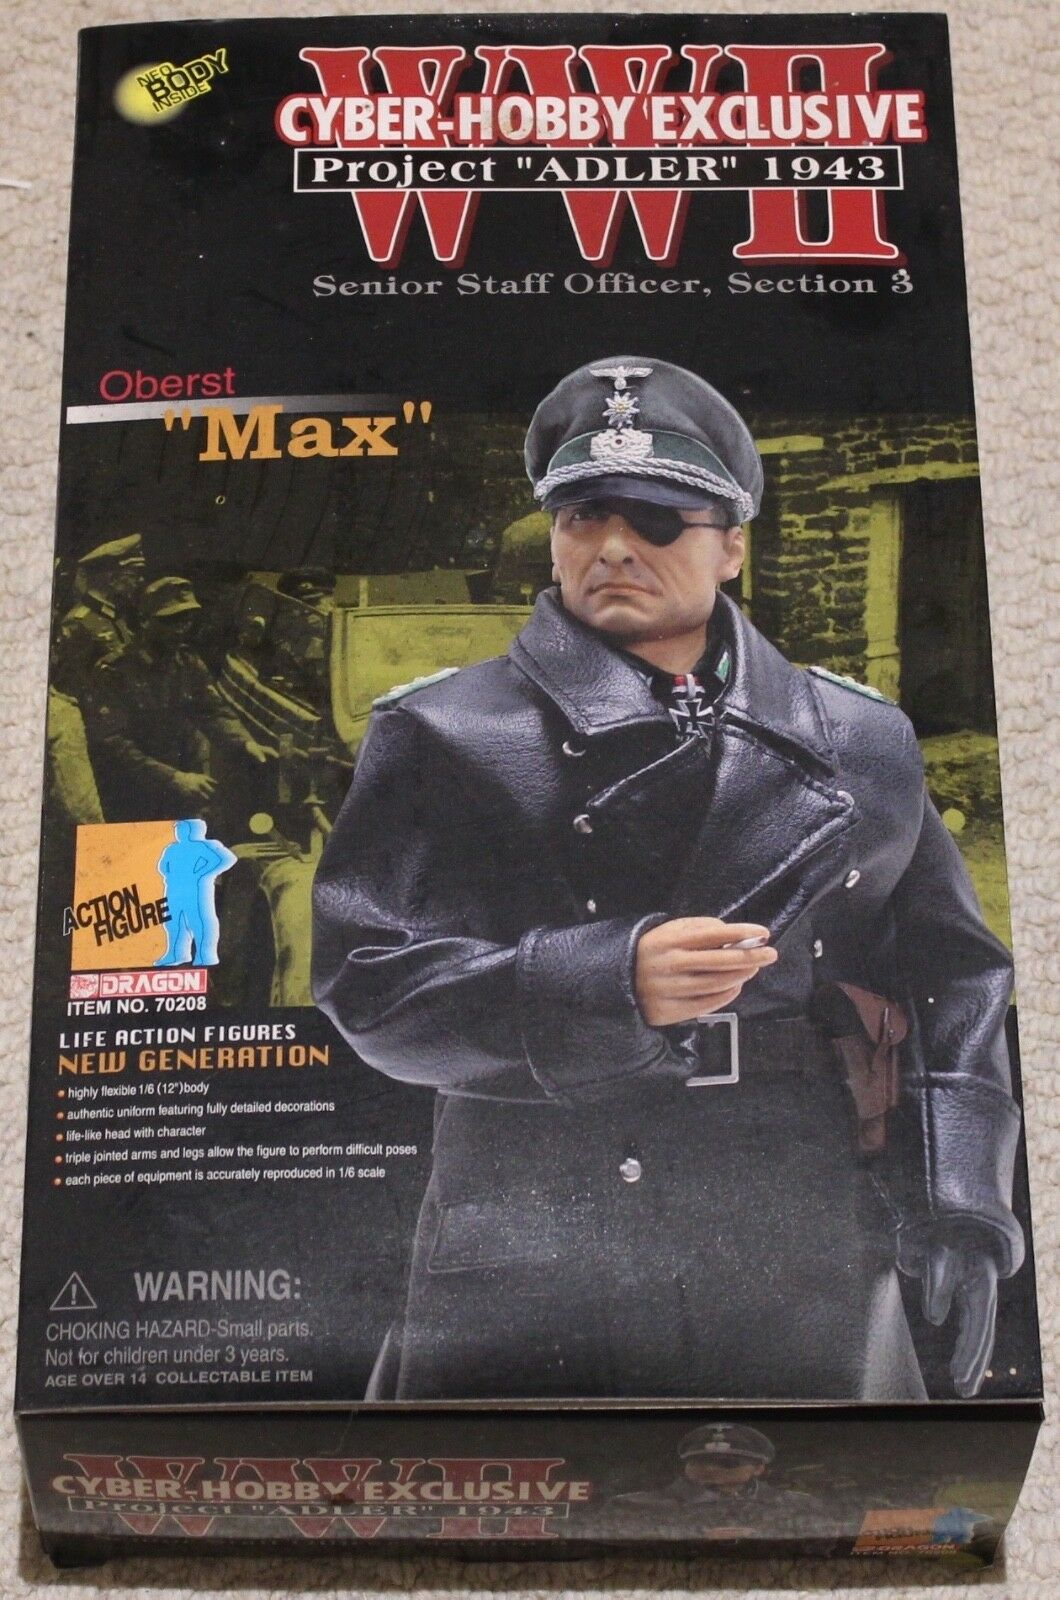 Dragon action figure 1 6 ww11 german max 12'' boxed did cyber hot toy